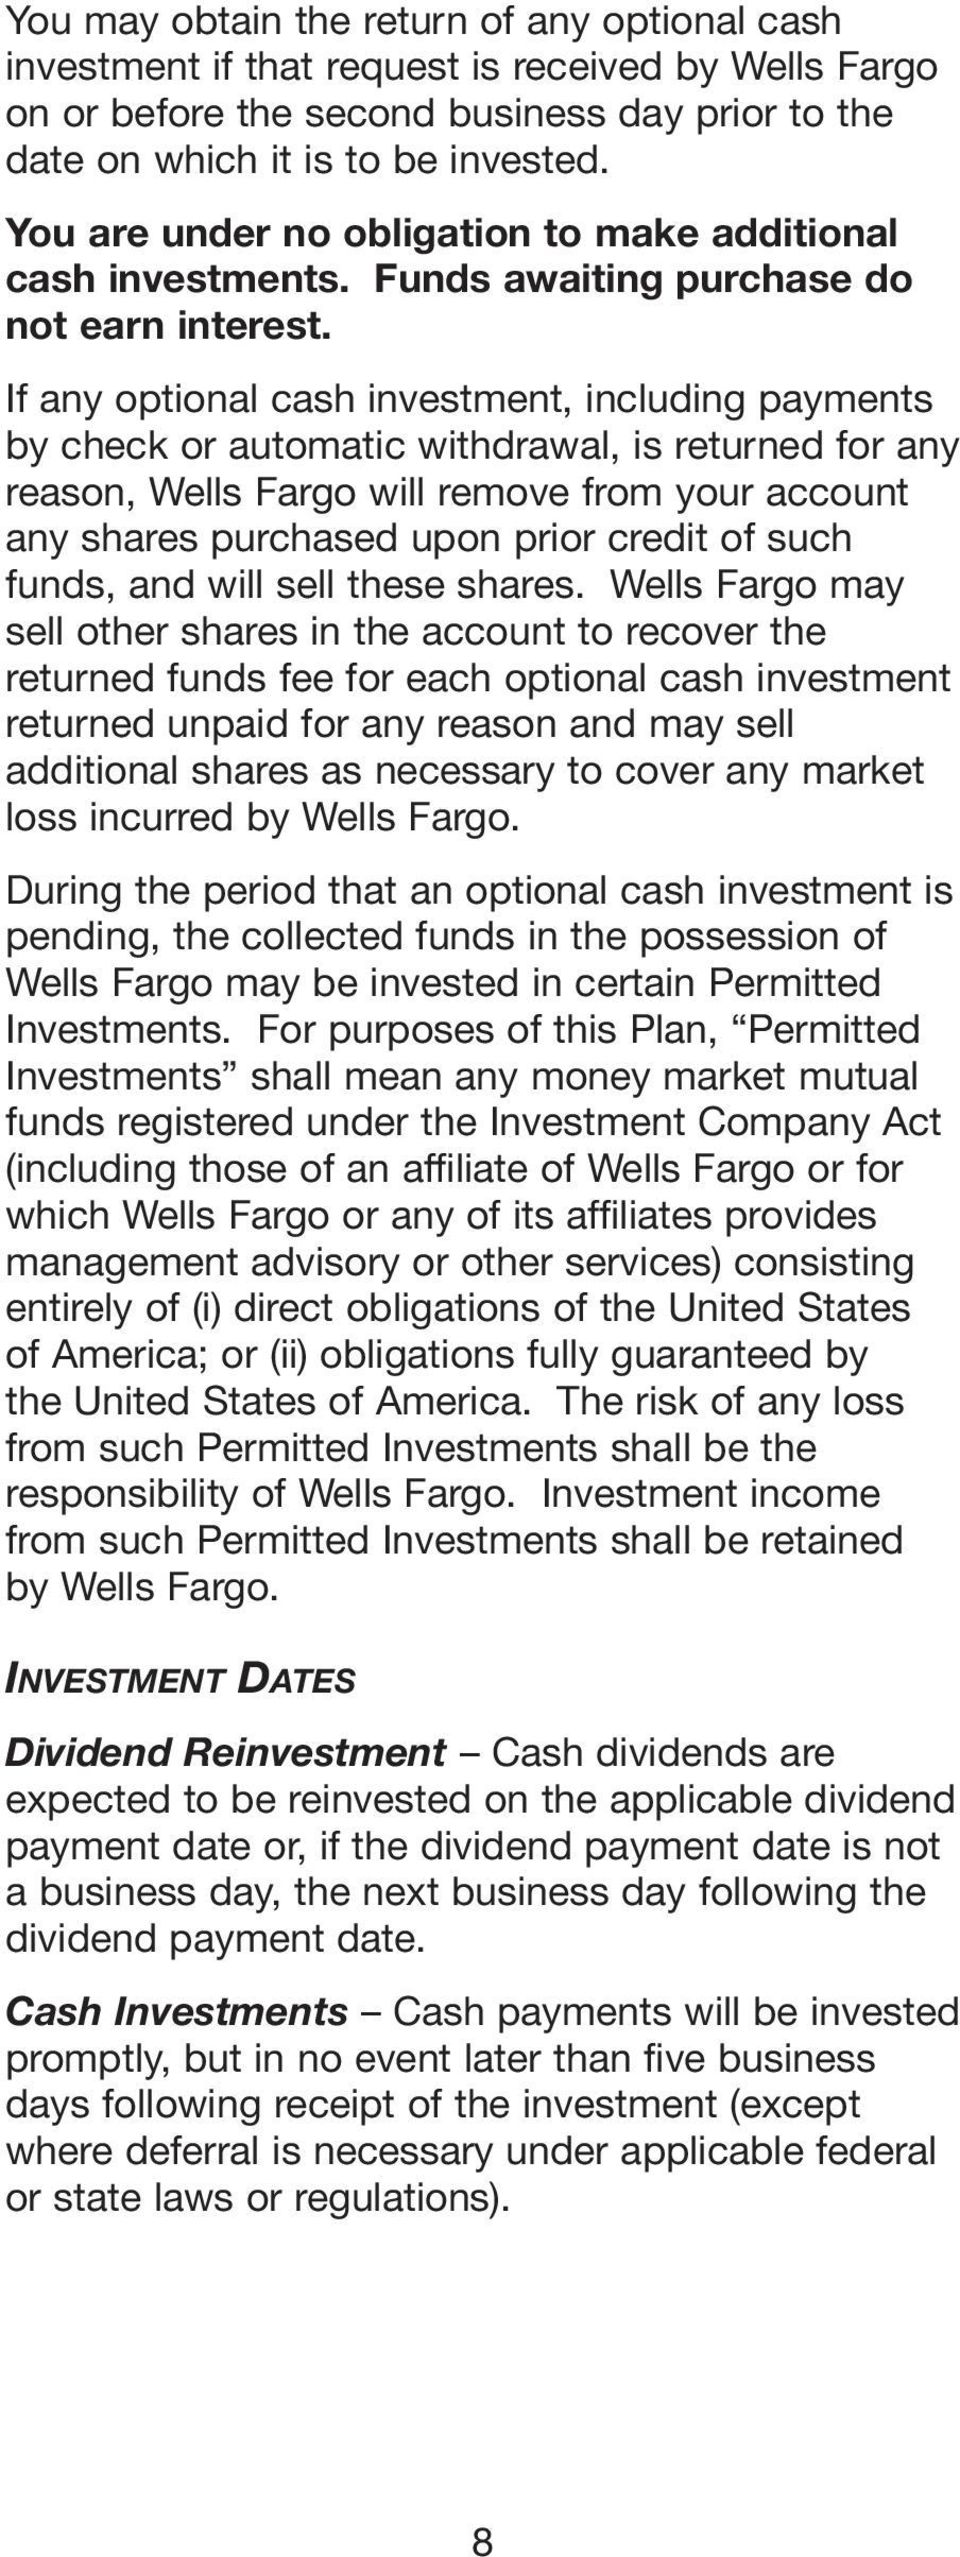 If any optional cash investment, including payments by check or automatic withdrawal, is returned for any reason, Wells Fargo will remove from your account any shares purchased upon prior credit of